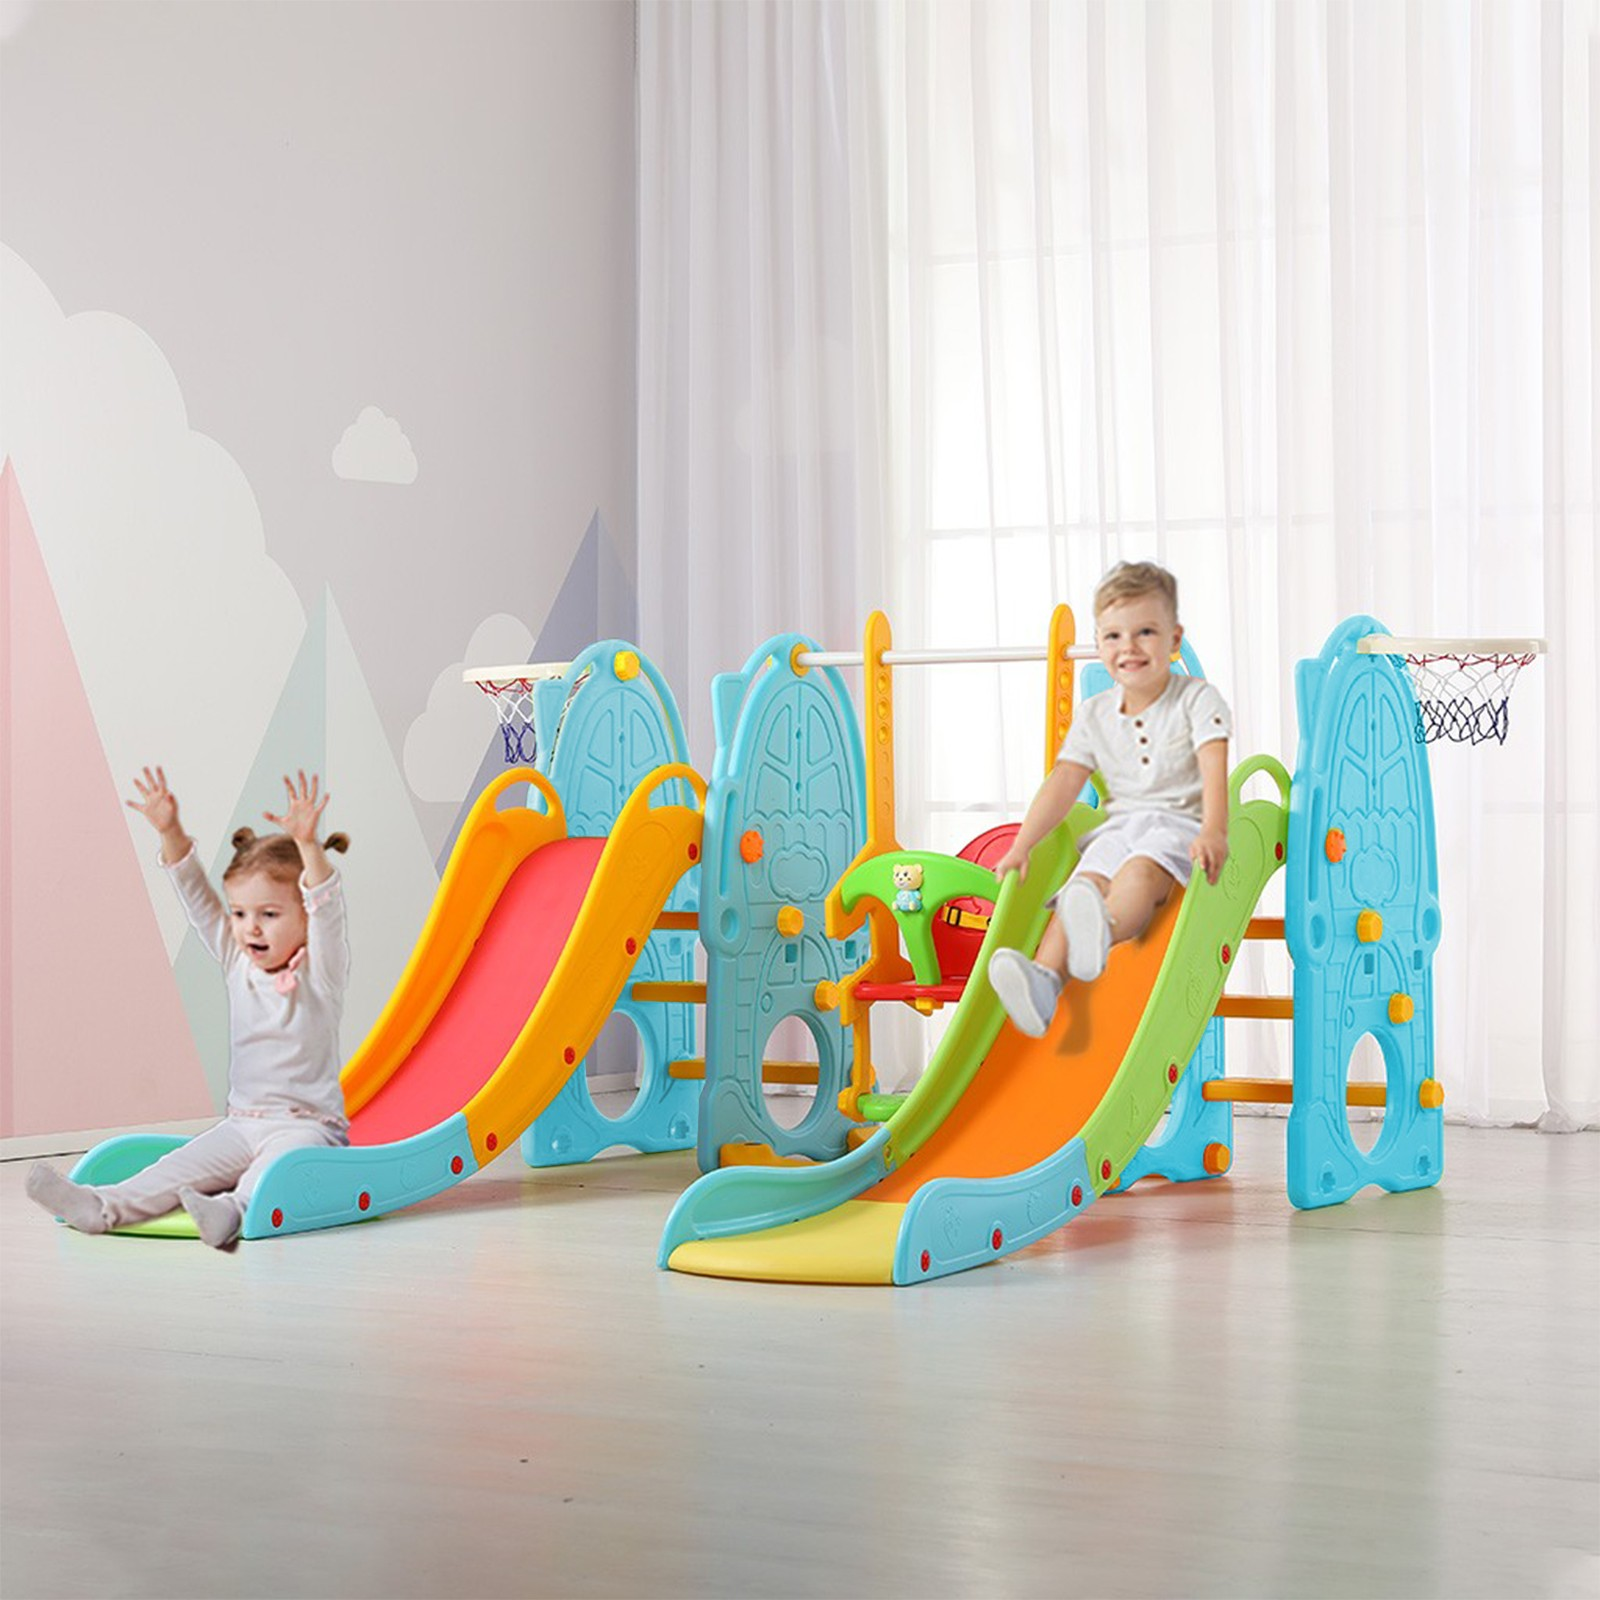 Toddler Climbing And Swing Set,Featuring Double Slides To Throw BasketBall